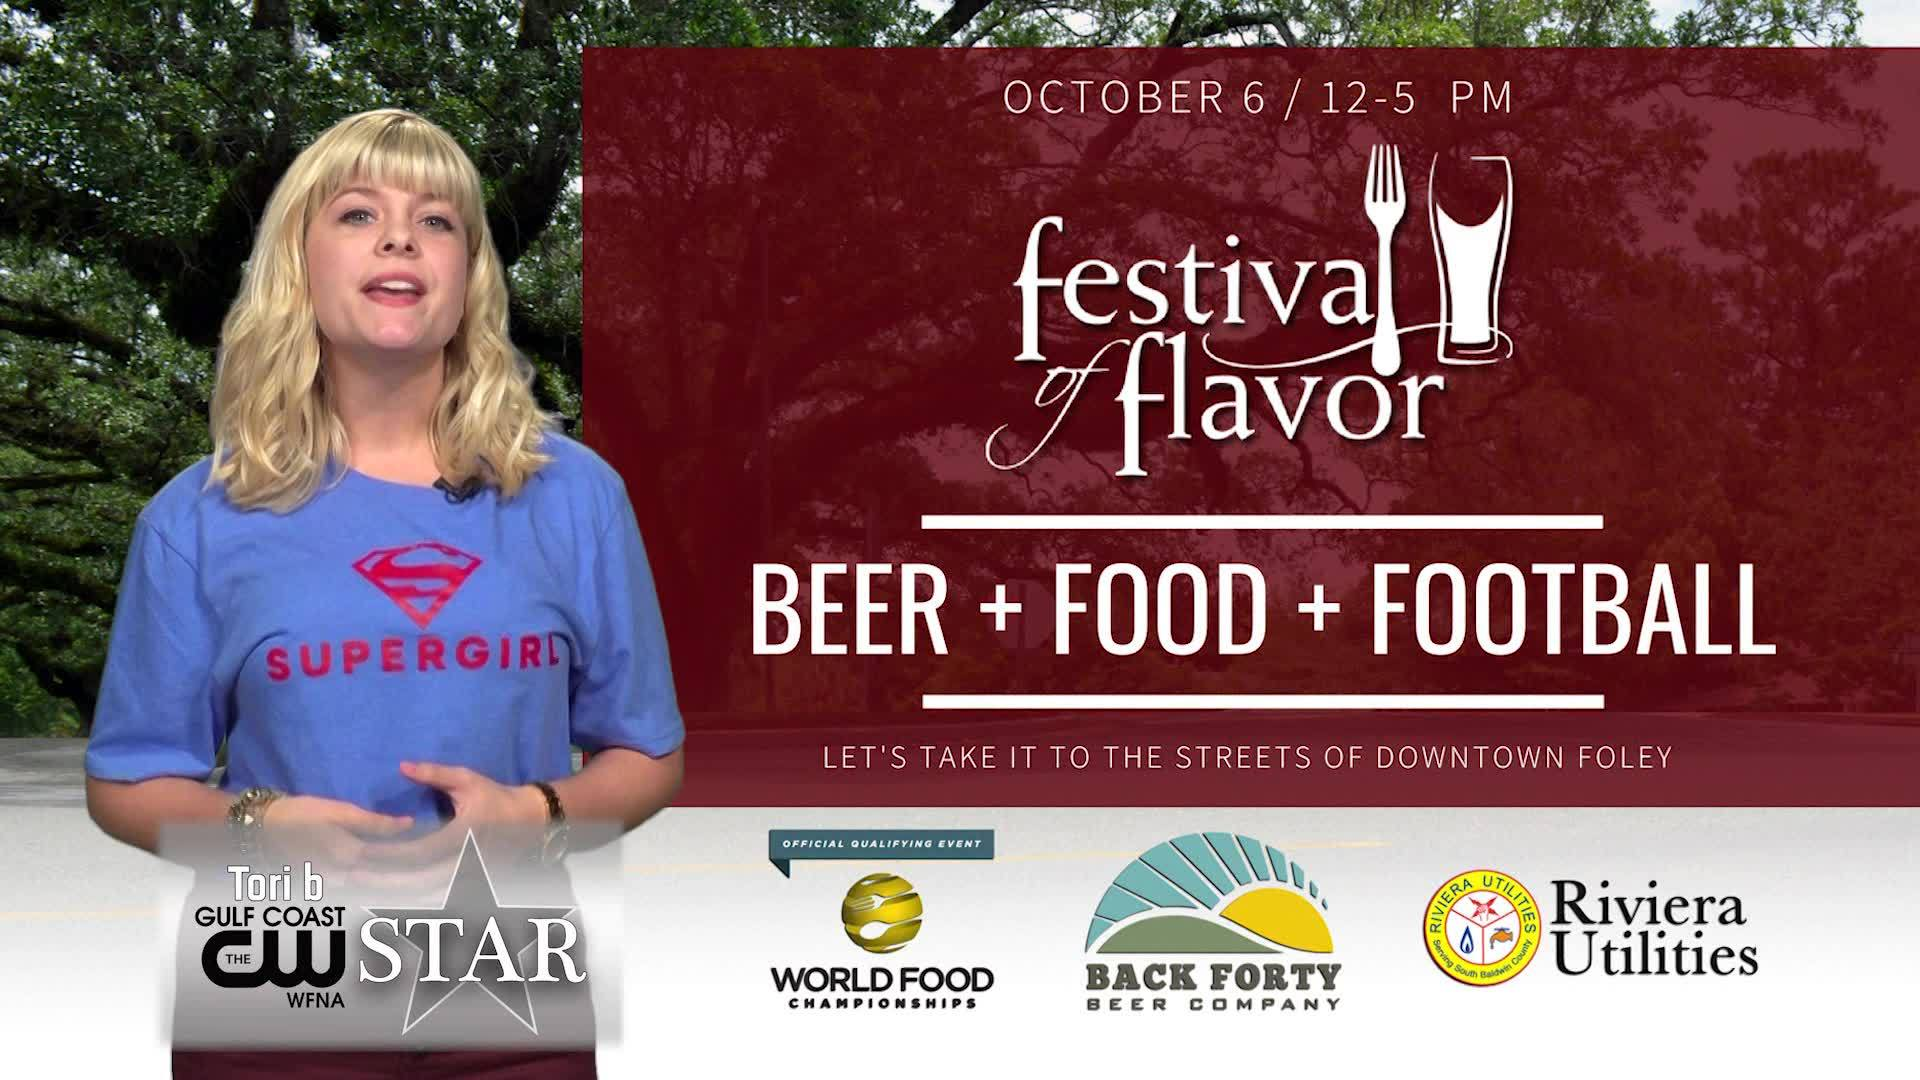 Festival of Flavor 2018